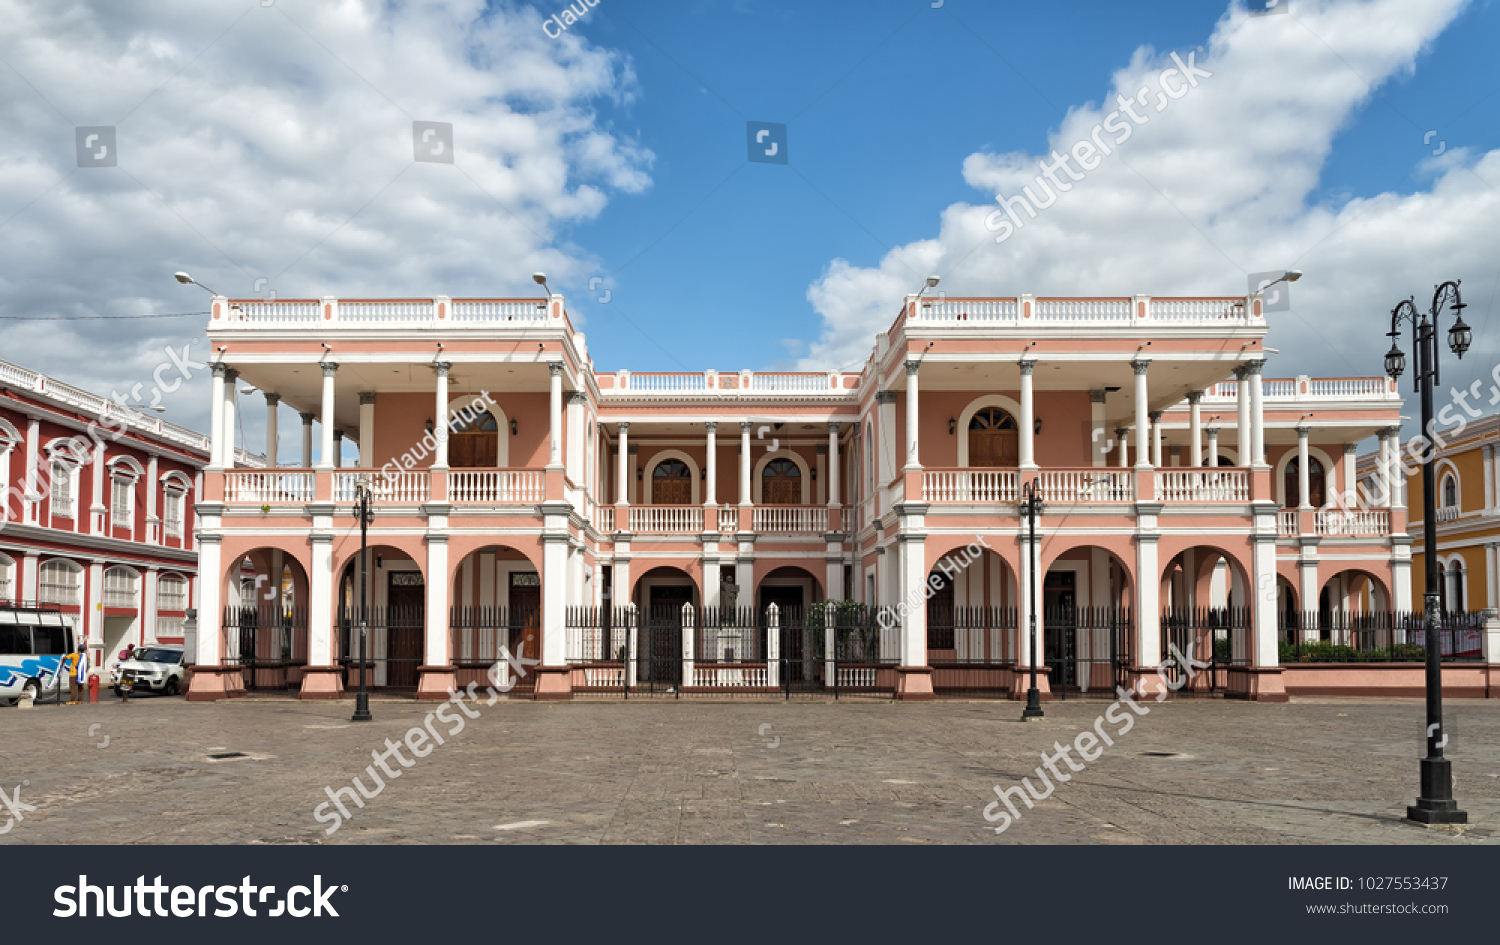 GRANADA, NICARAGUA - JANUARY 23, 2018: The Bishop's Palace (Palacio Episcopal) was constructed in 1913 by the Cardenal family and donated to the bishop of Granada who used it as his residence in 1920.